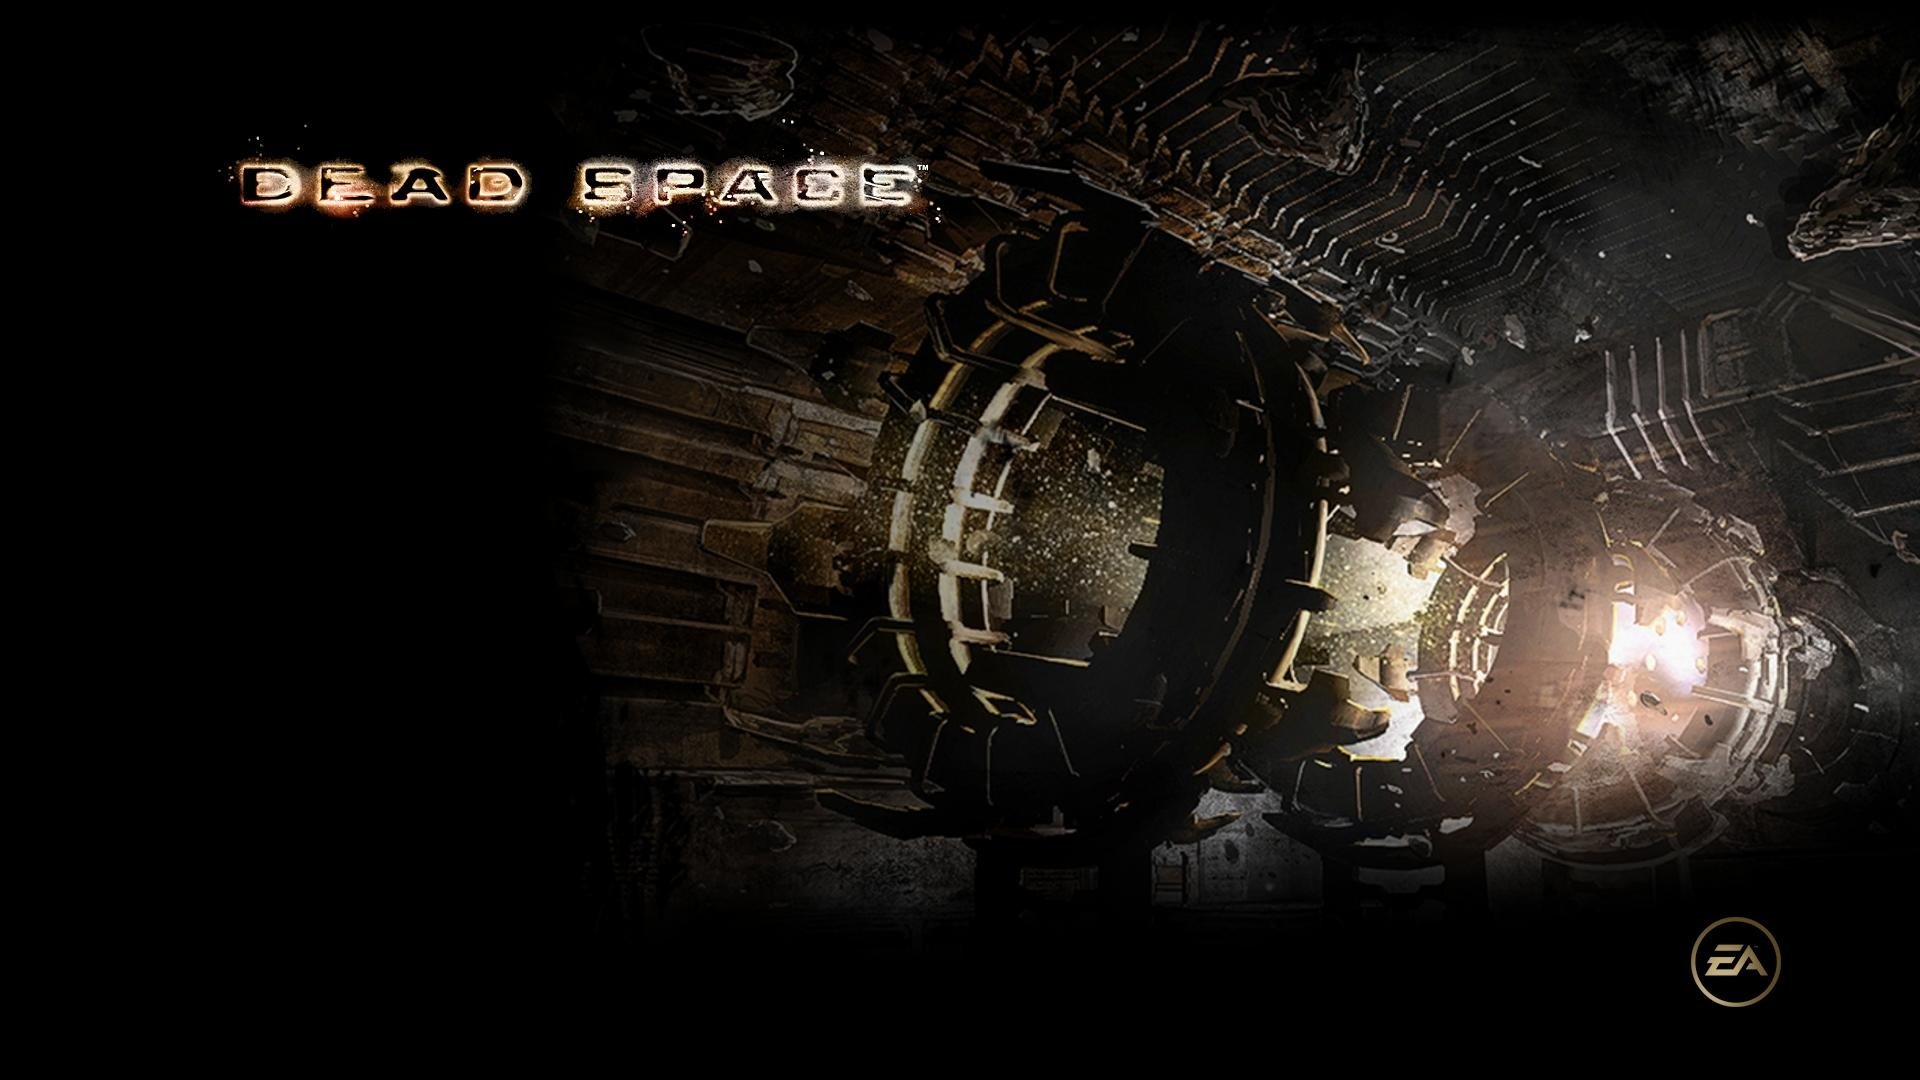 248 Dead Space HD Wallpapers | Backgrounds - Wallpaper Abyss